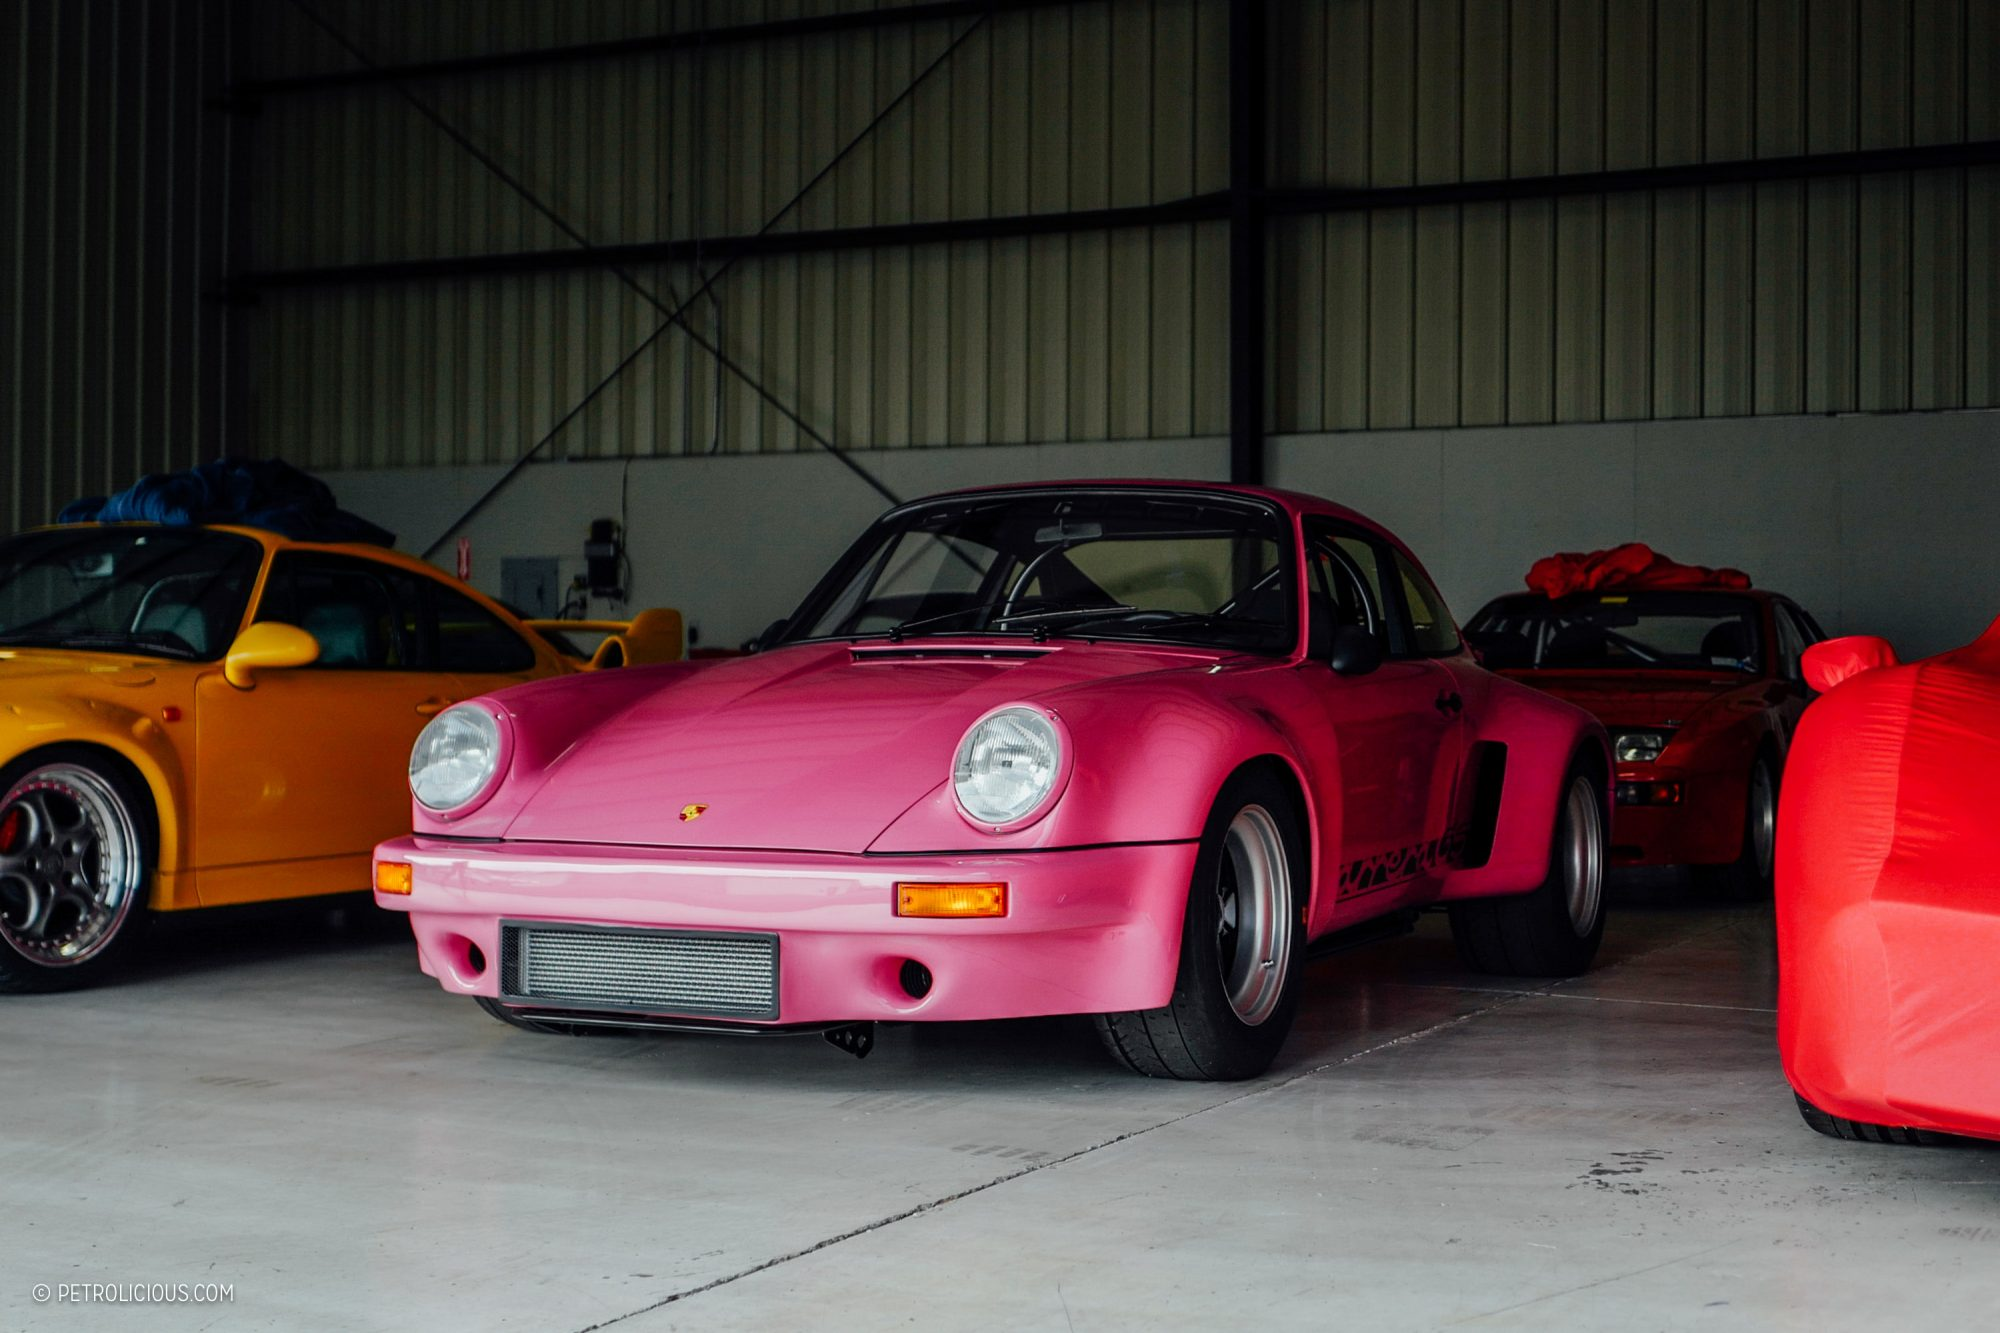 this-pink-911rsr-is-a-fully-custom-street-legal-factory-race-car-1476933923611-2000x1333